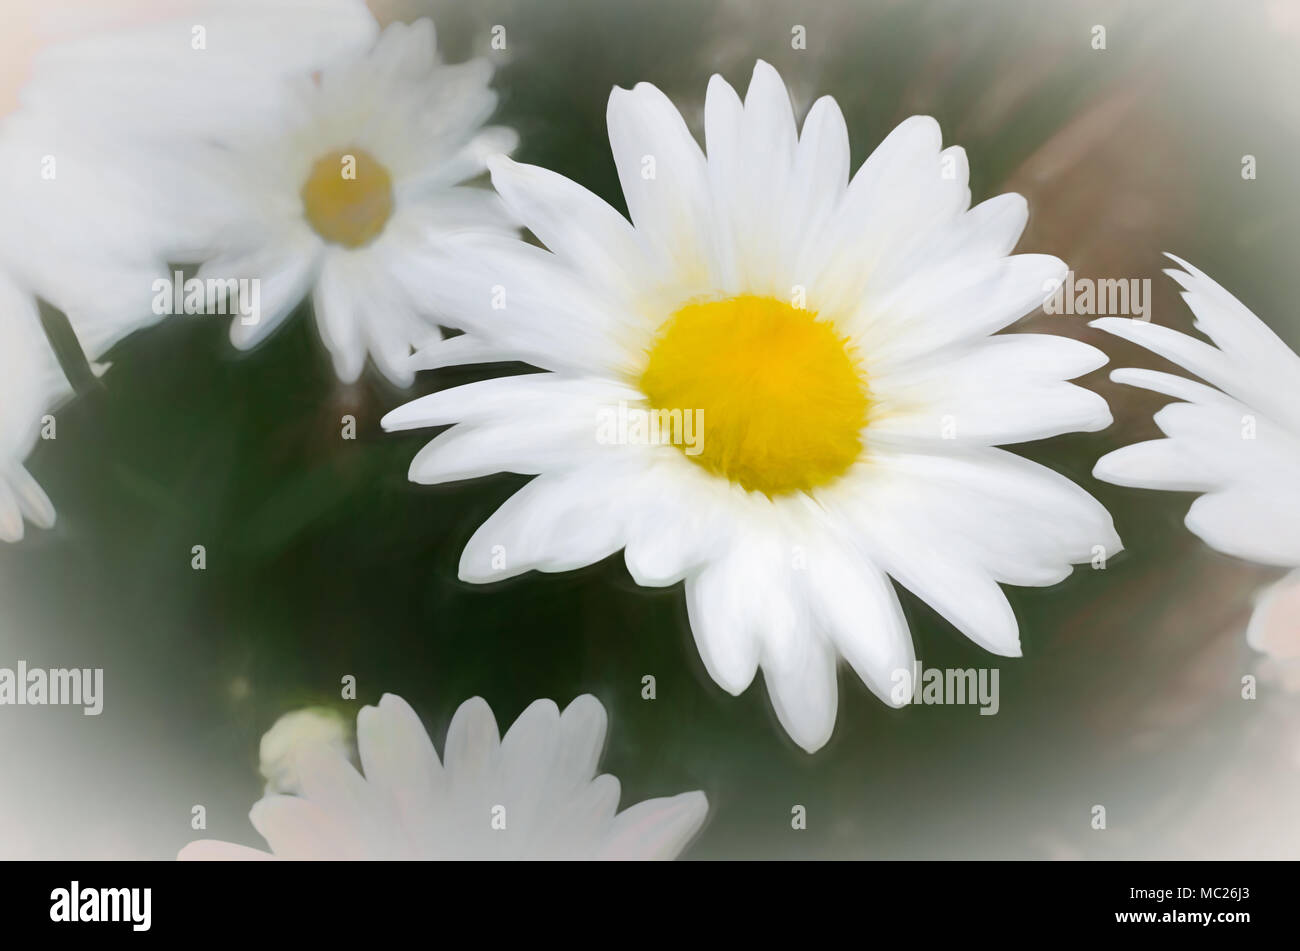 Daisies flowers in painting style look like painting by hand stock daisies flowers in painting style look like painting by hand izmirmasajfo